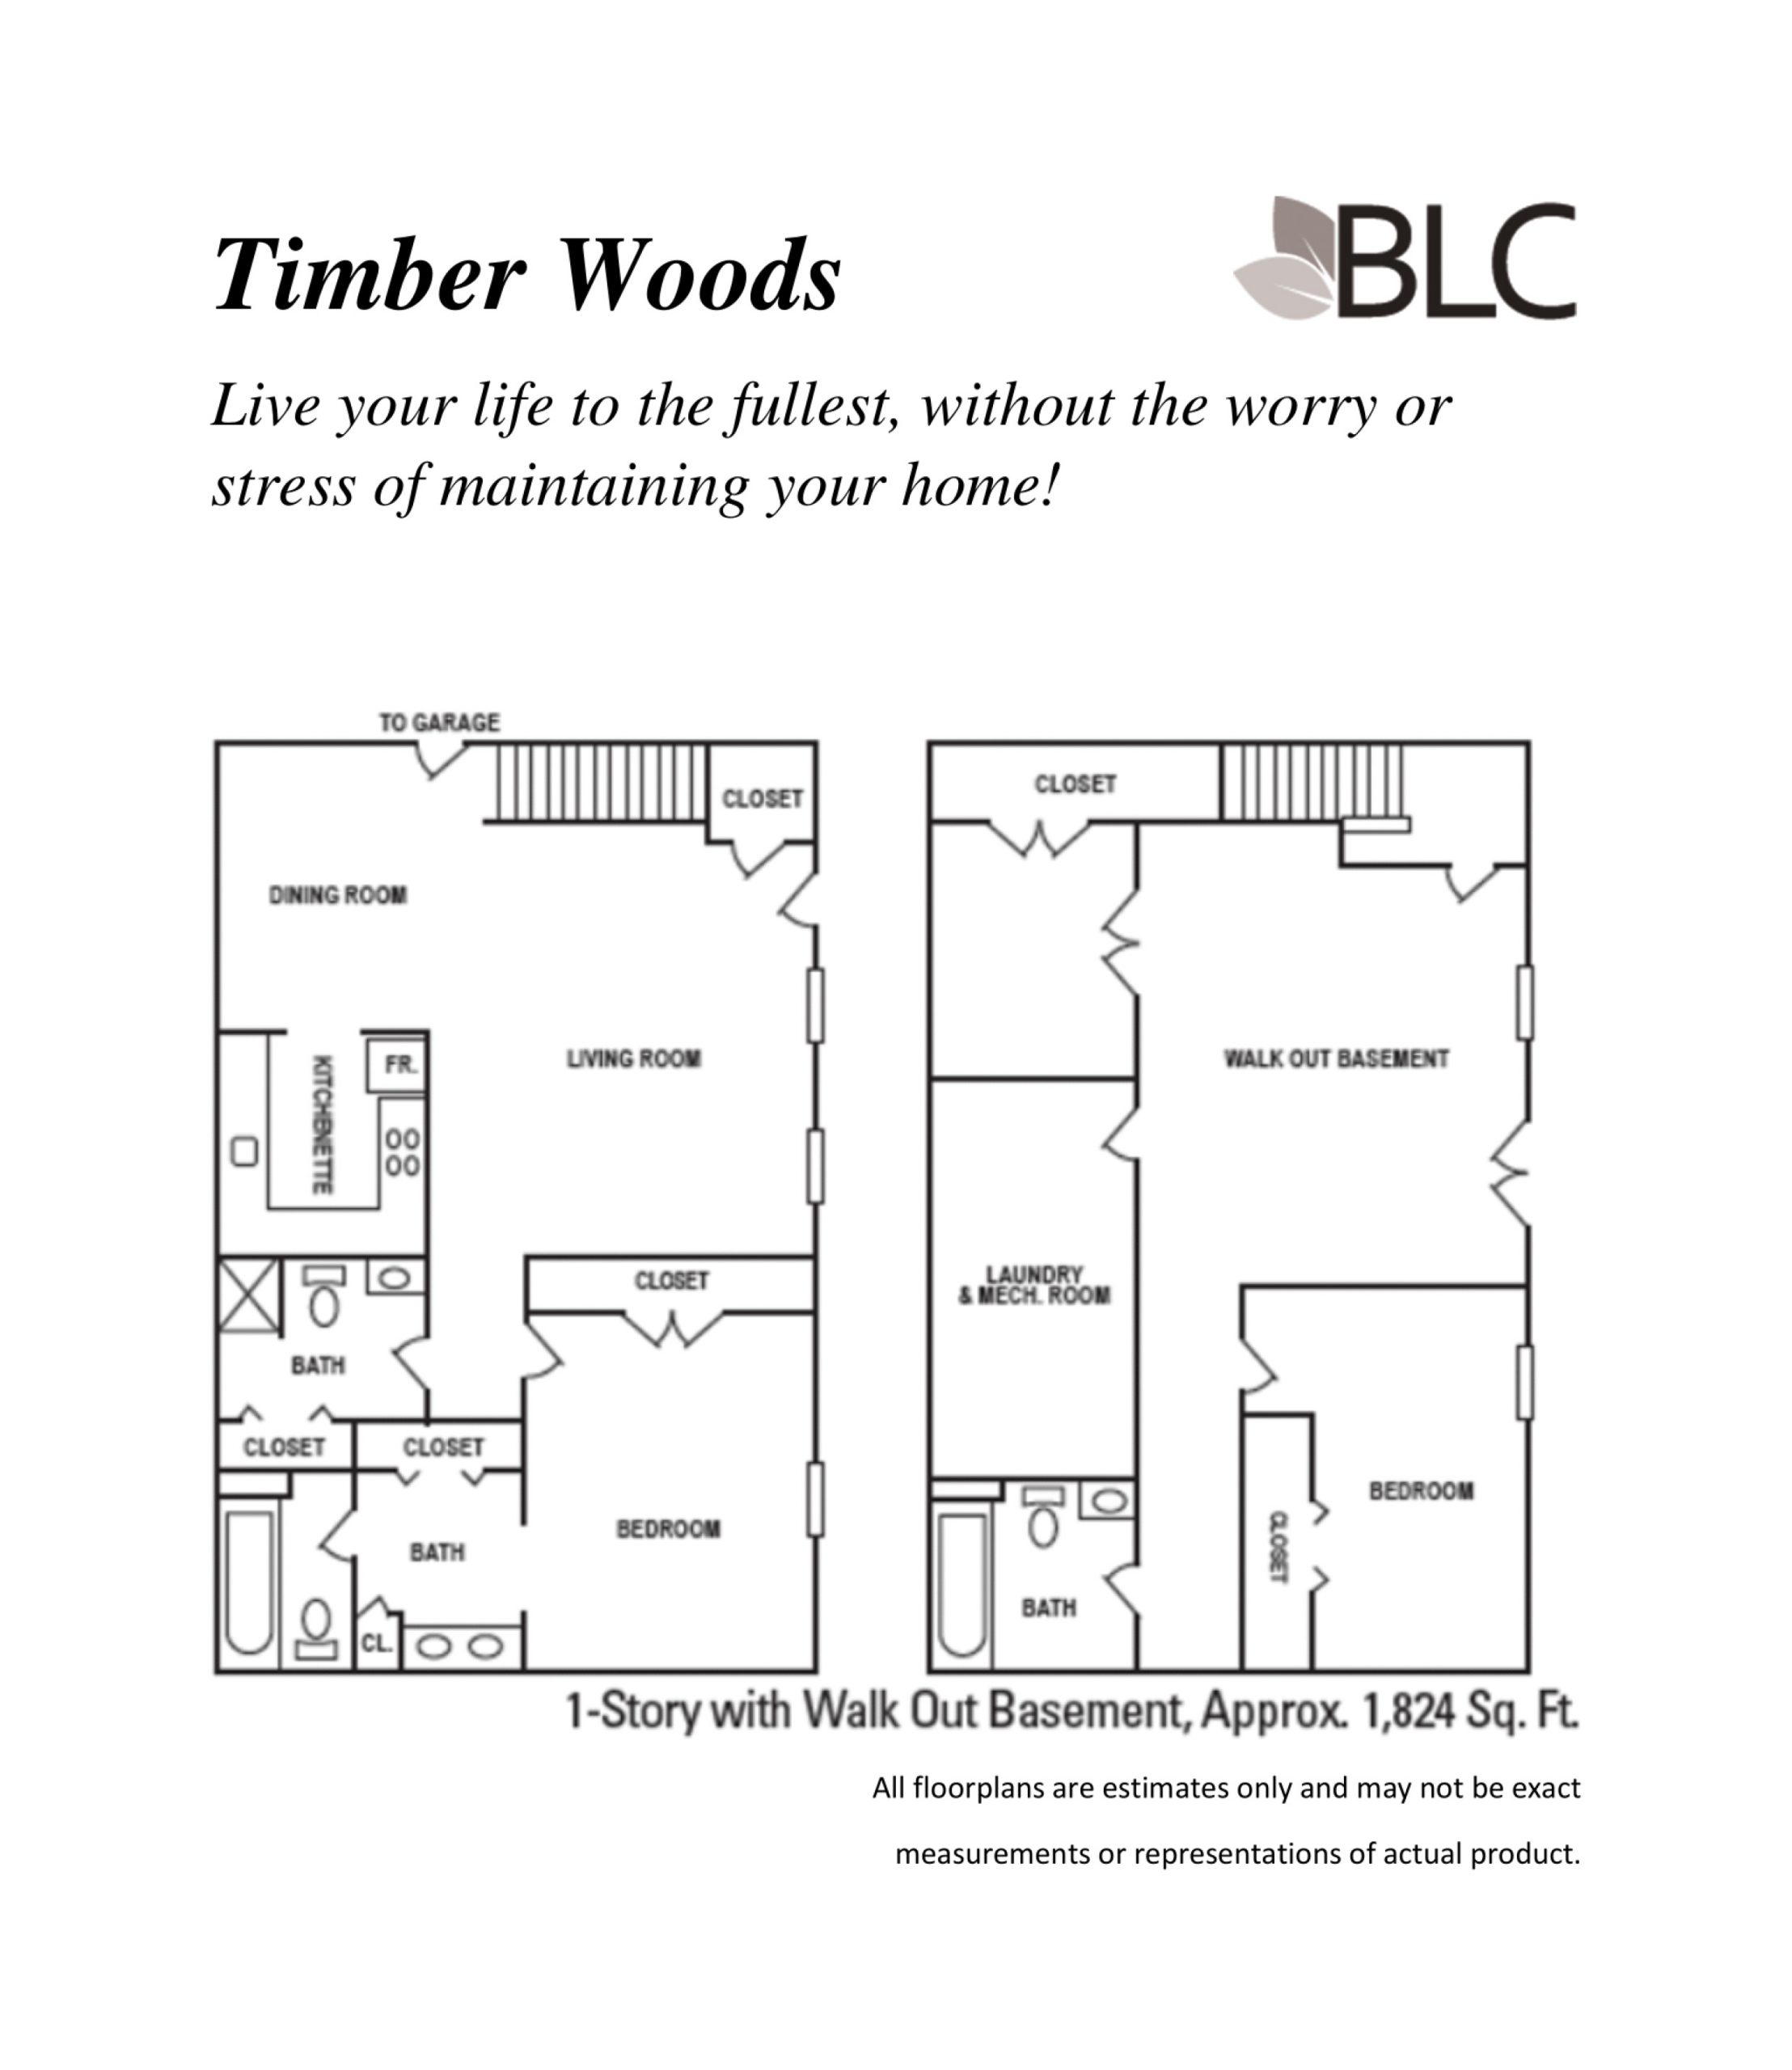 Timber Woods 1 Story With Walkout Basement